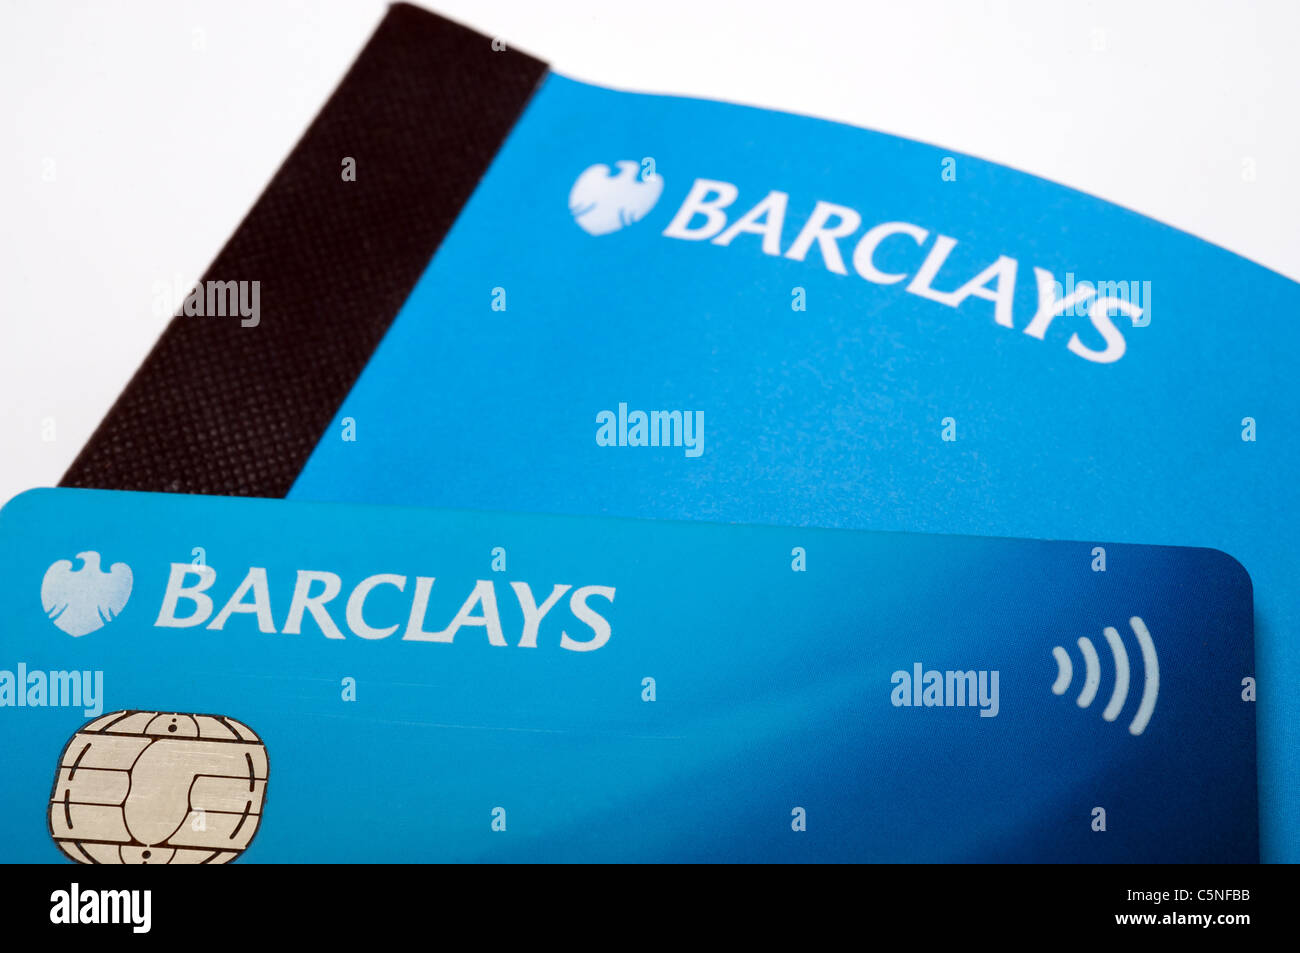 Barclays debit card and cheque book Stock Photo: 37967087 - Alamy